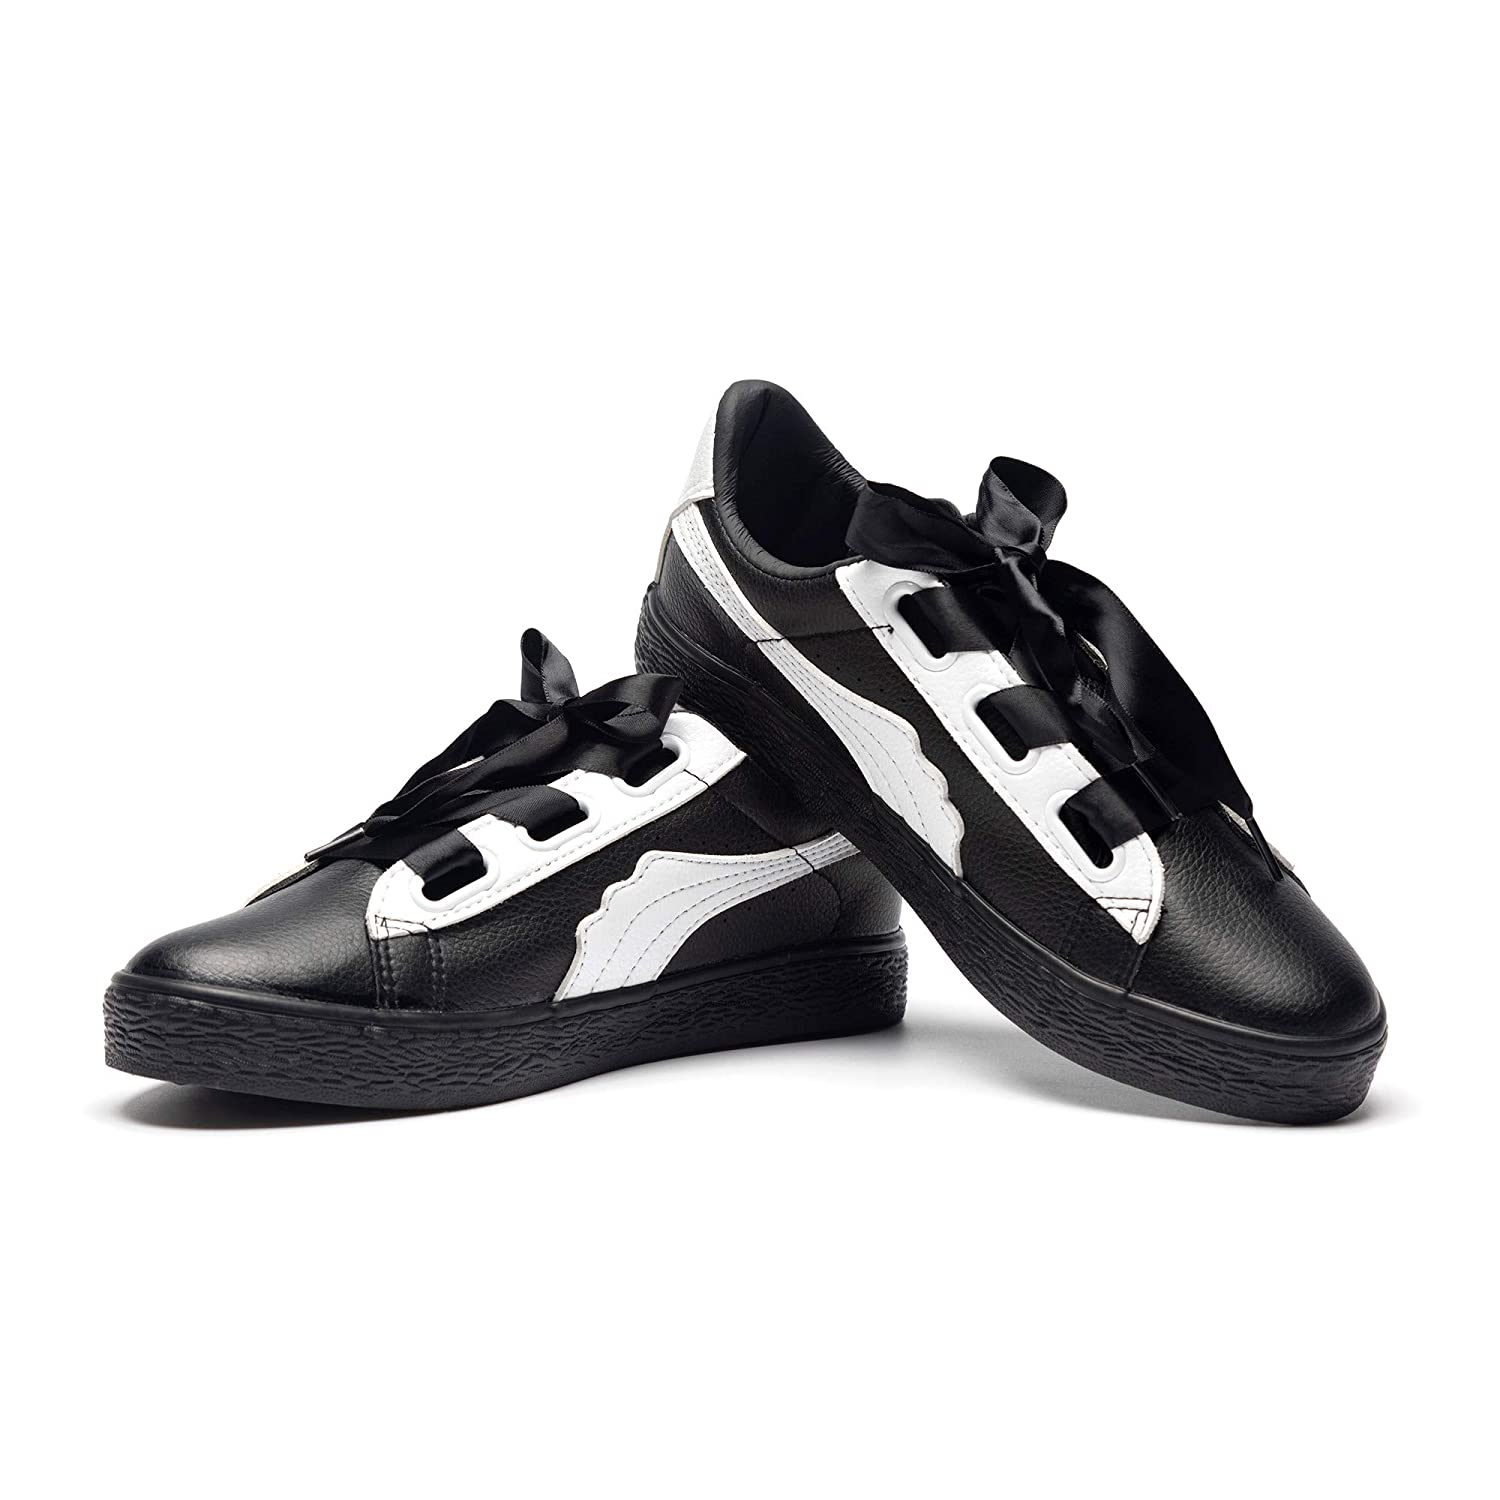 Synthetic Leather - Black & White Lantina Women's Low Top Fashion Sneakers